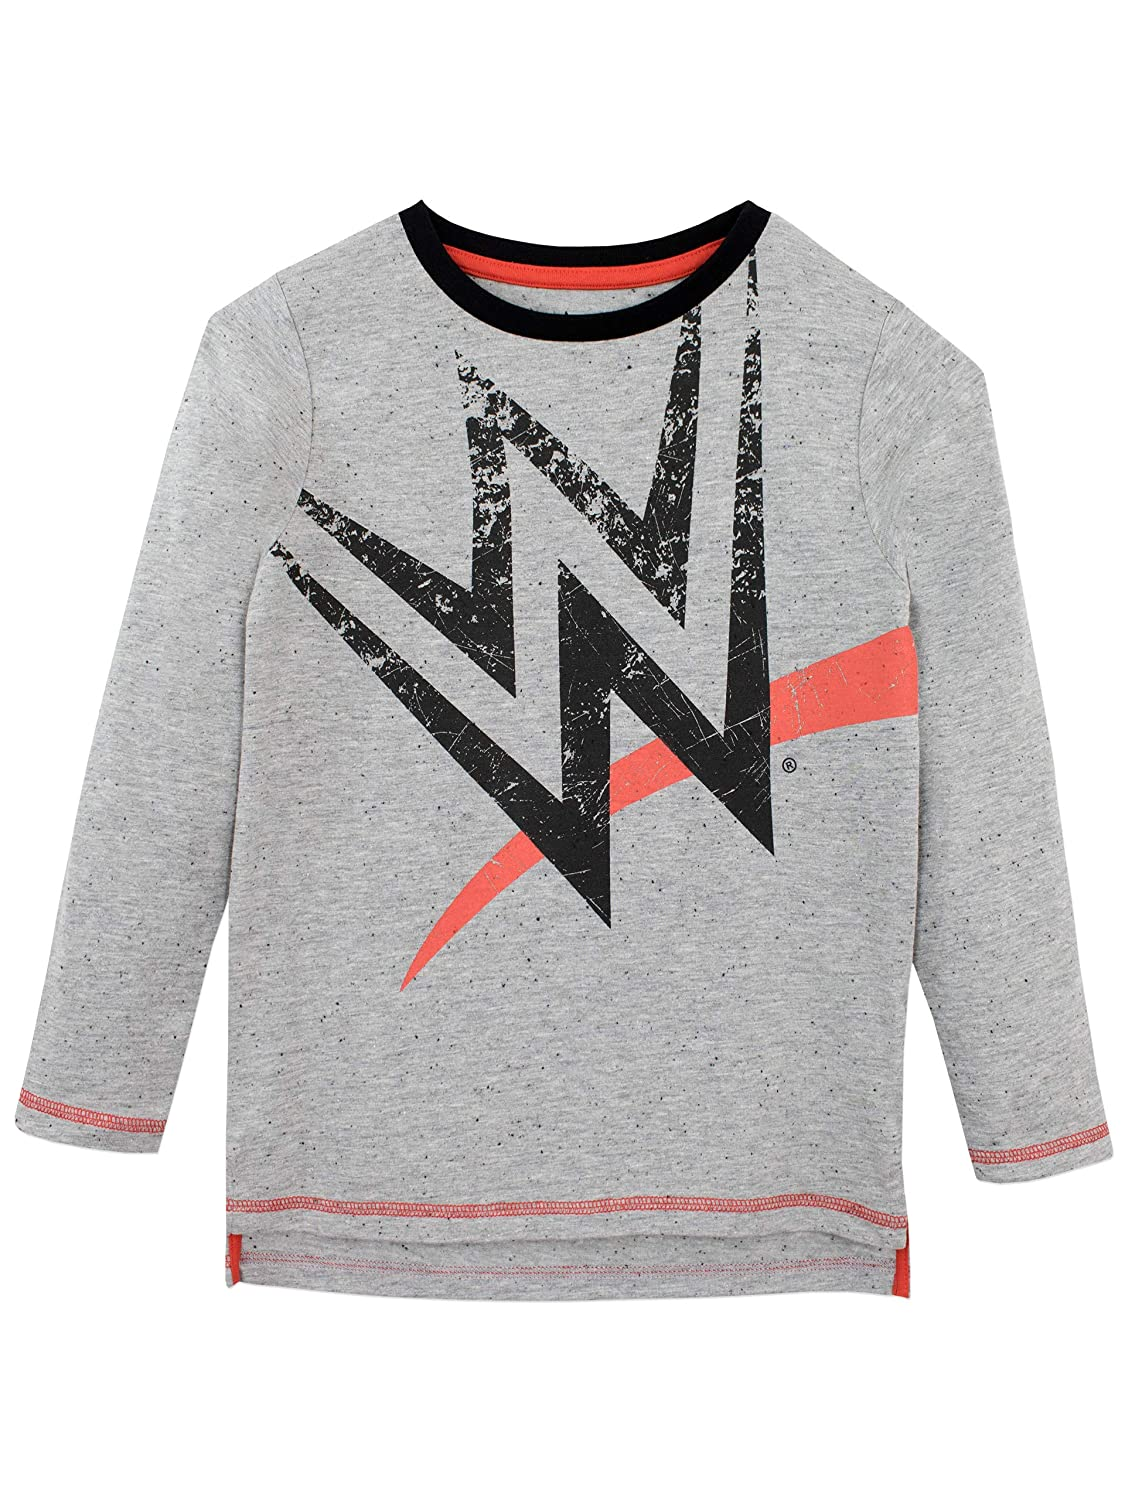 WWE Boys World Wrestling Entertainment Long Sleeved Top